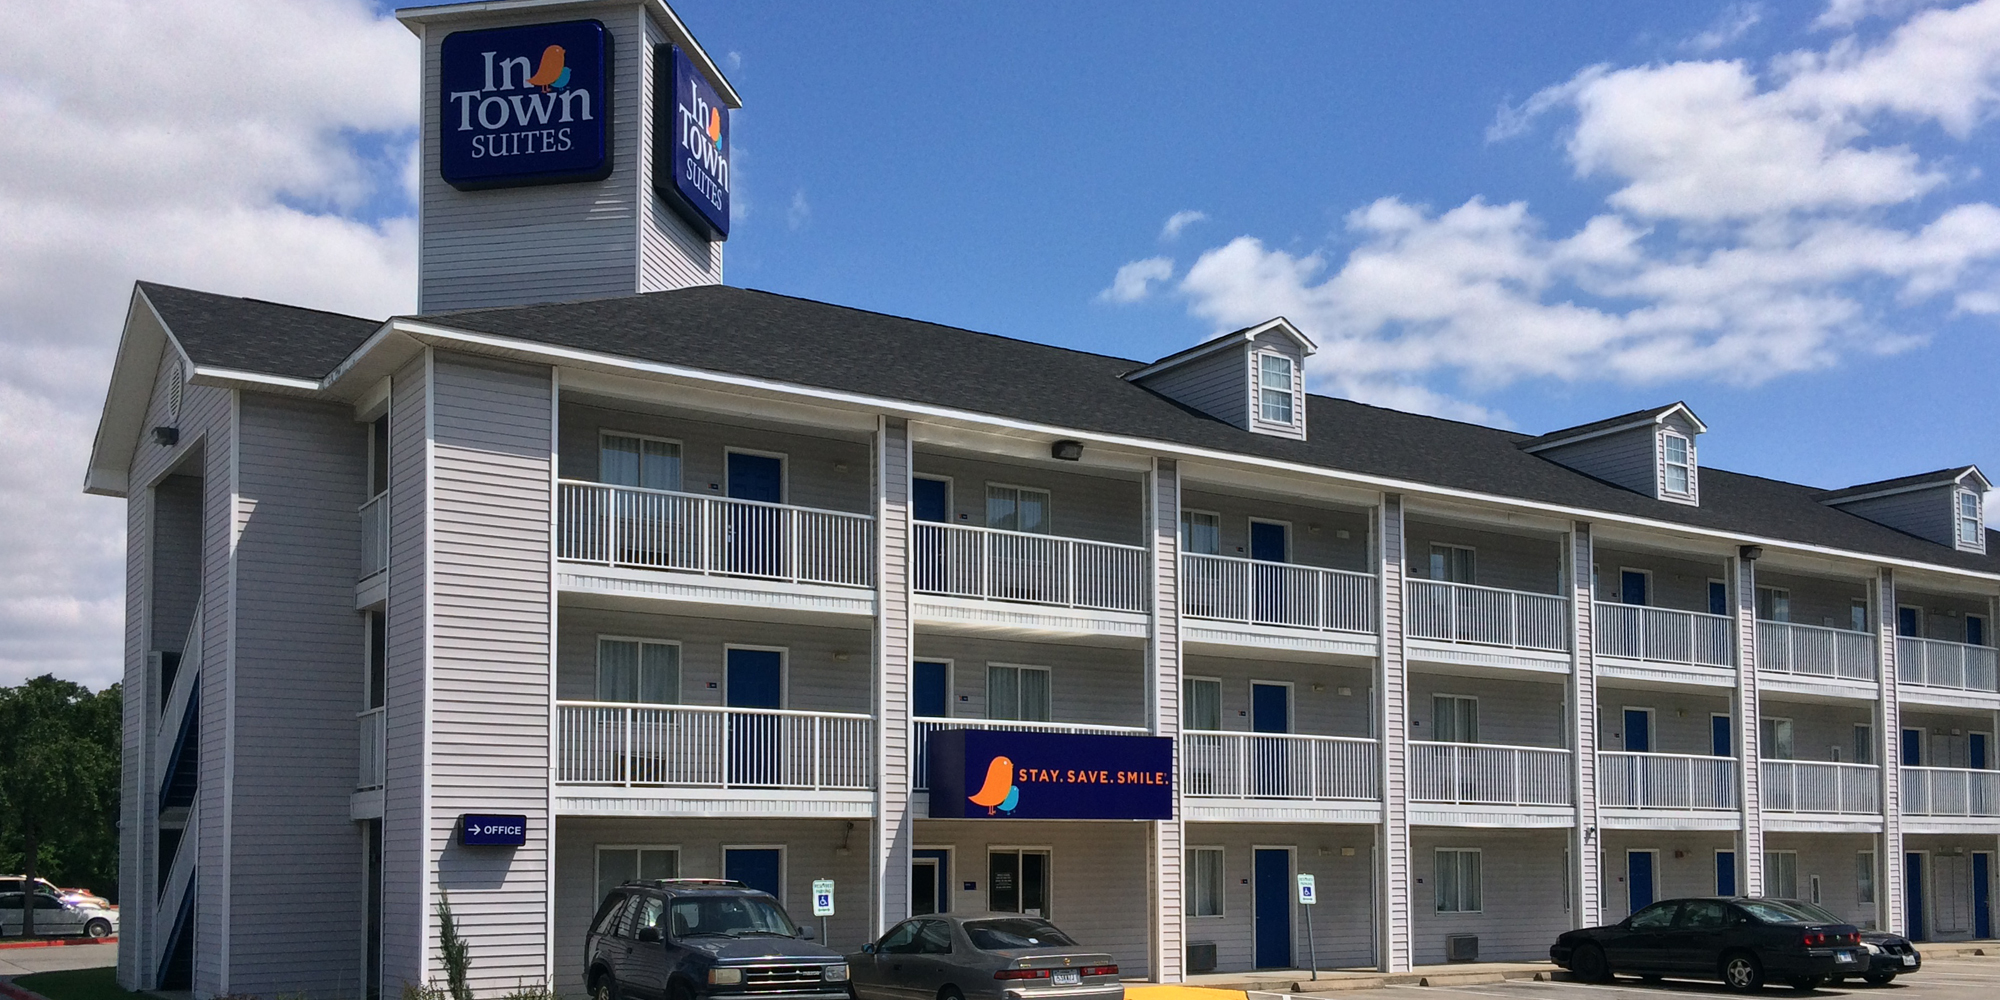 InTown Suites Extended Stay Houston TX - Stuebner Airline Road